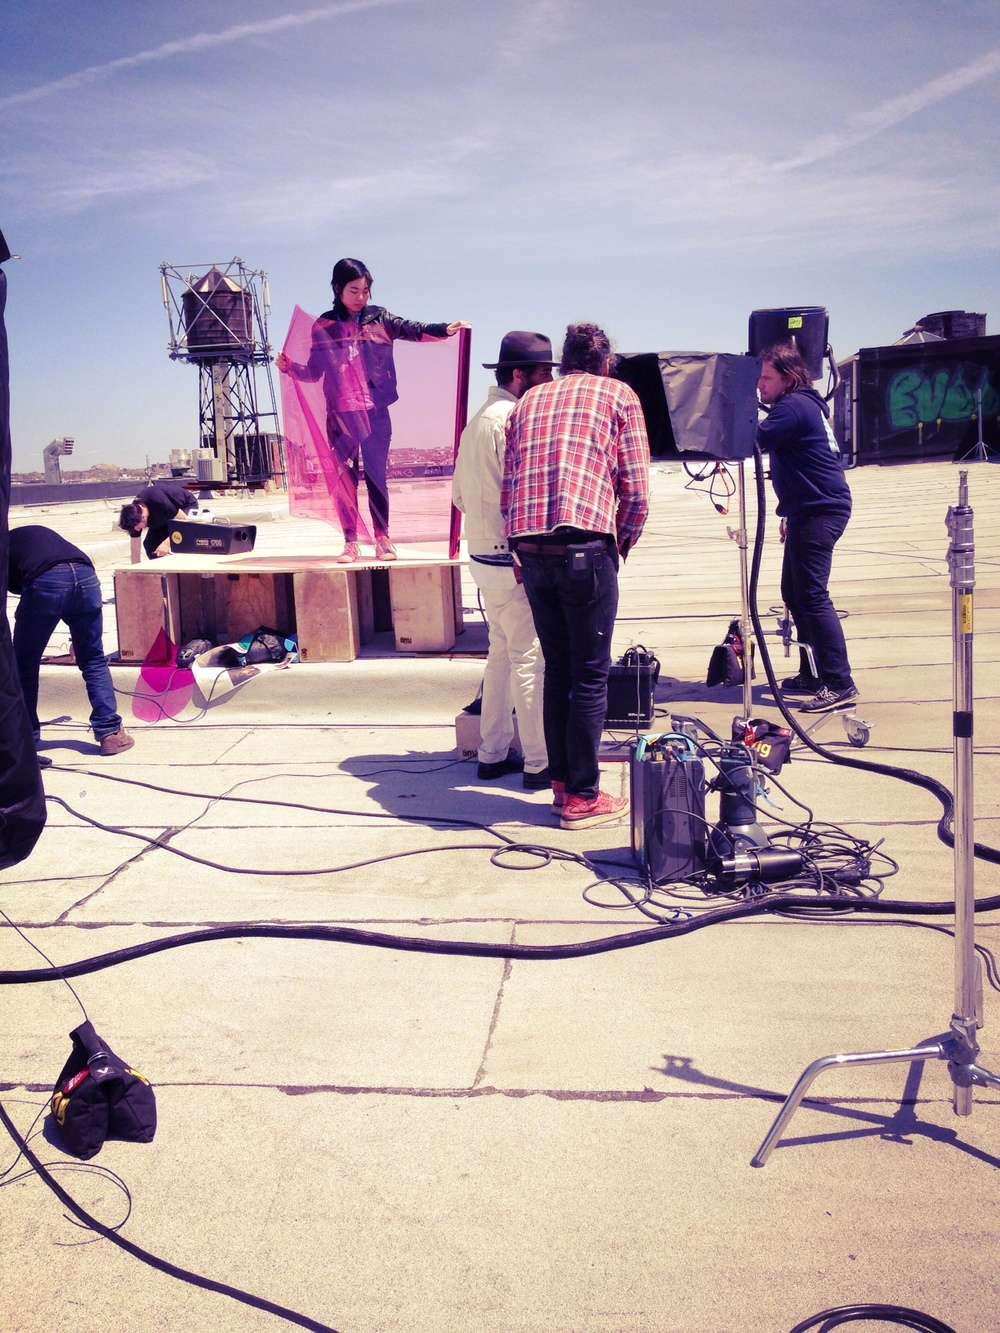 Alexei Hay and his team setting up on the roof!